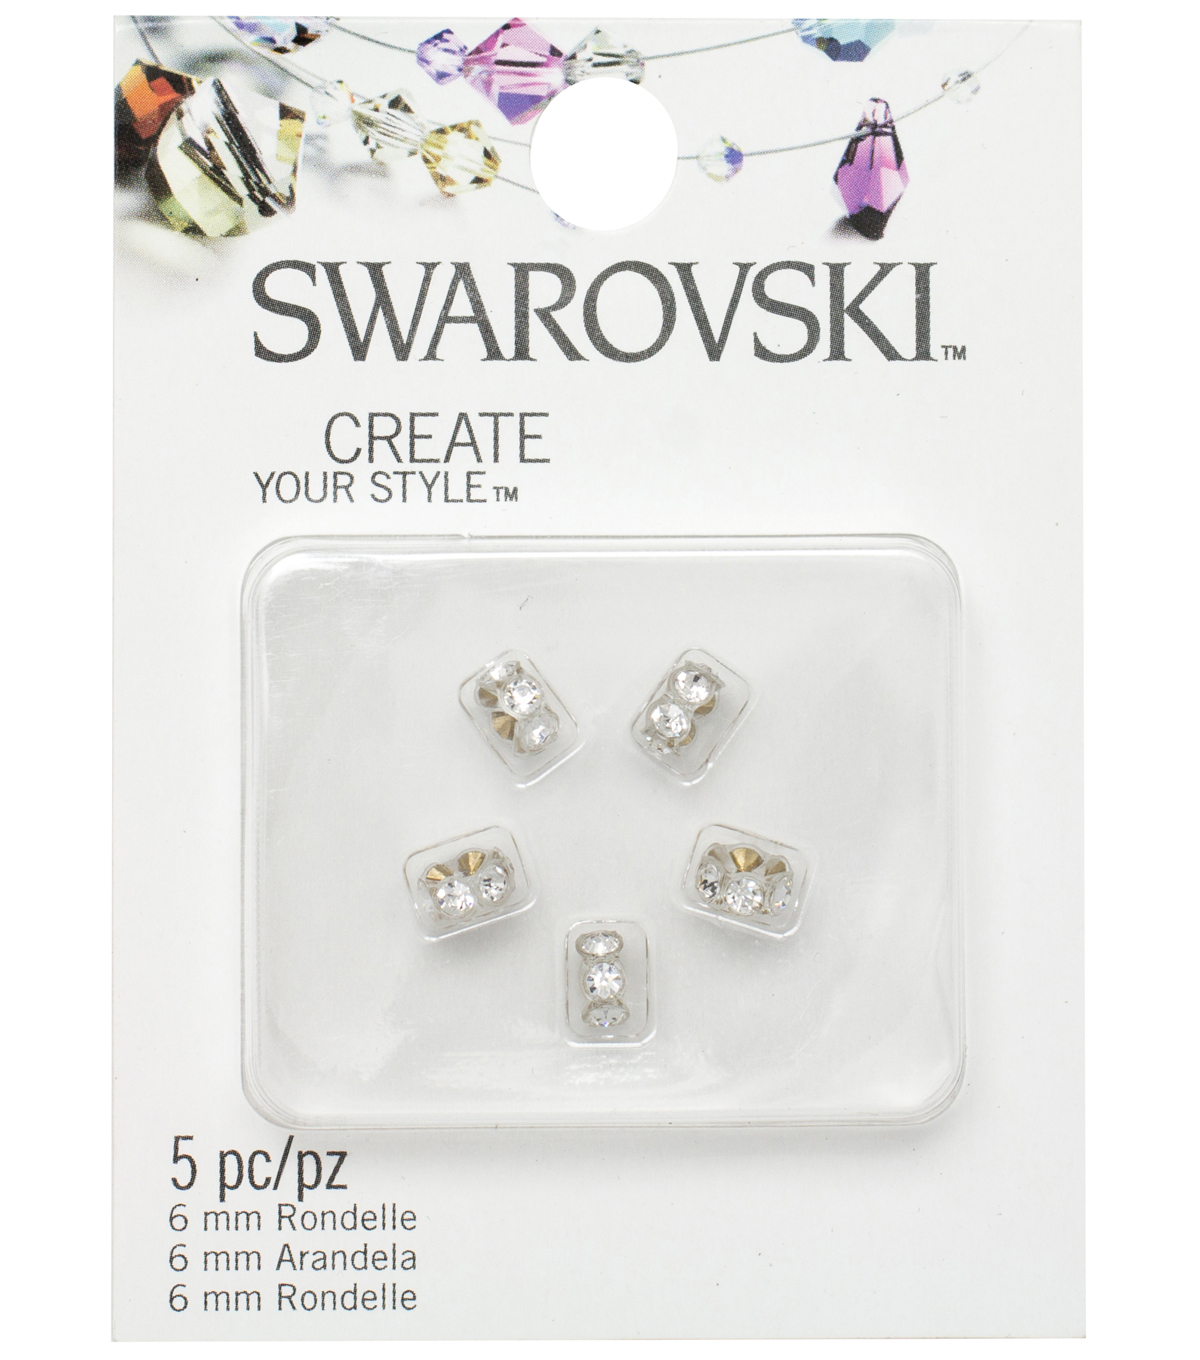 5mm Create Your Style Swarovski Roundelle Beads-Clear with Crystals